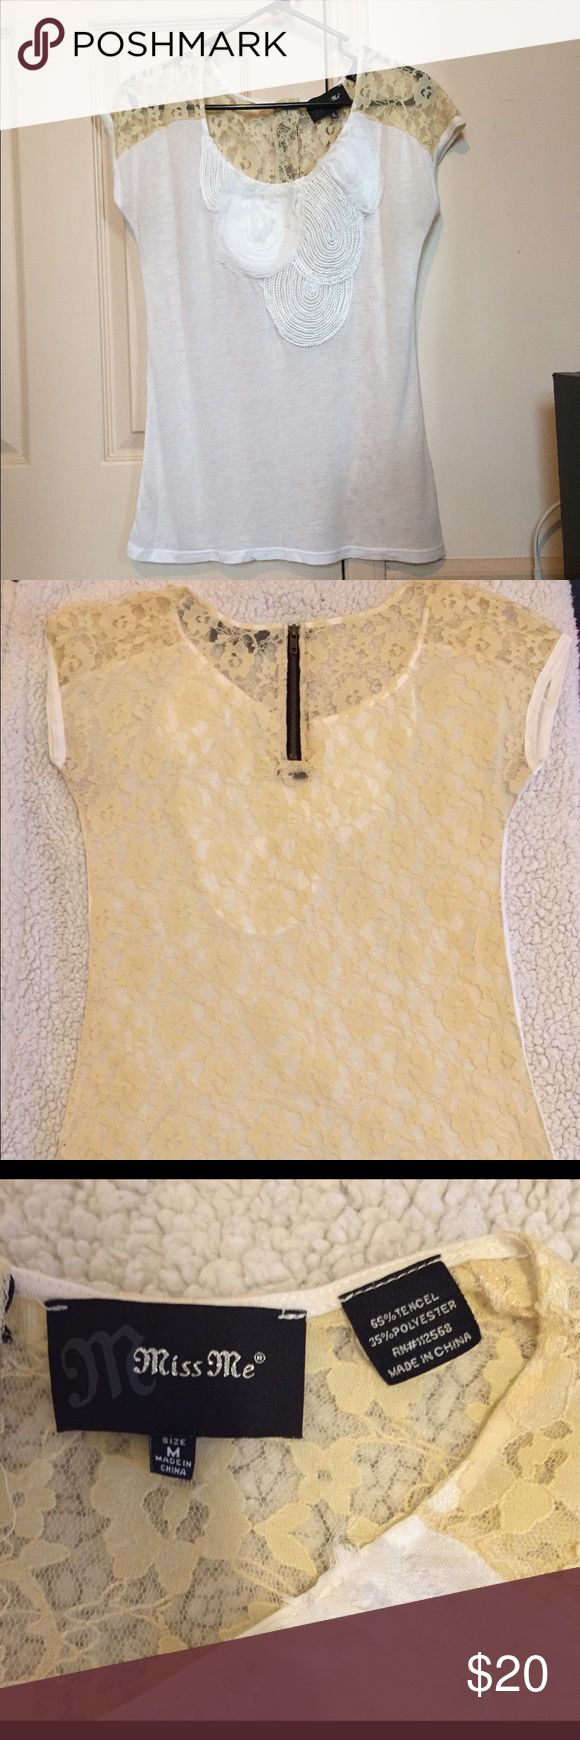 Miss Me Shirt Miss Me brand white tshirt with beige lace on the back and shoulders.  Zipper on back; detail of front of the shirt in picture 4. Miss Me Tops Tees - Short Sleeve